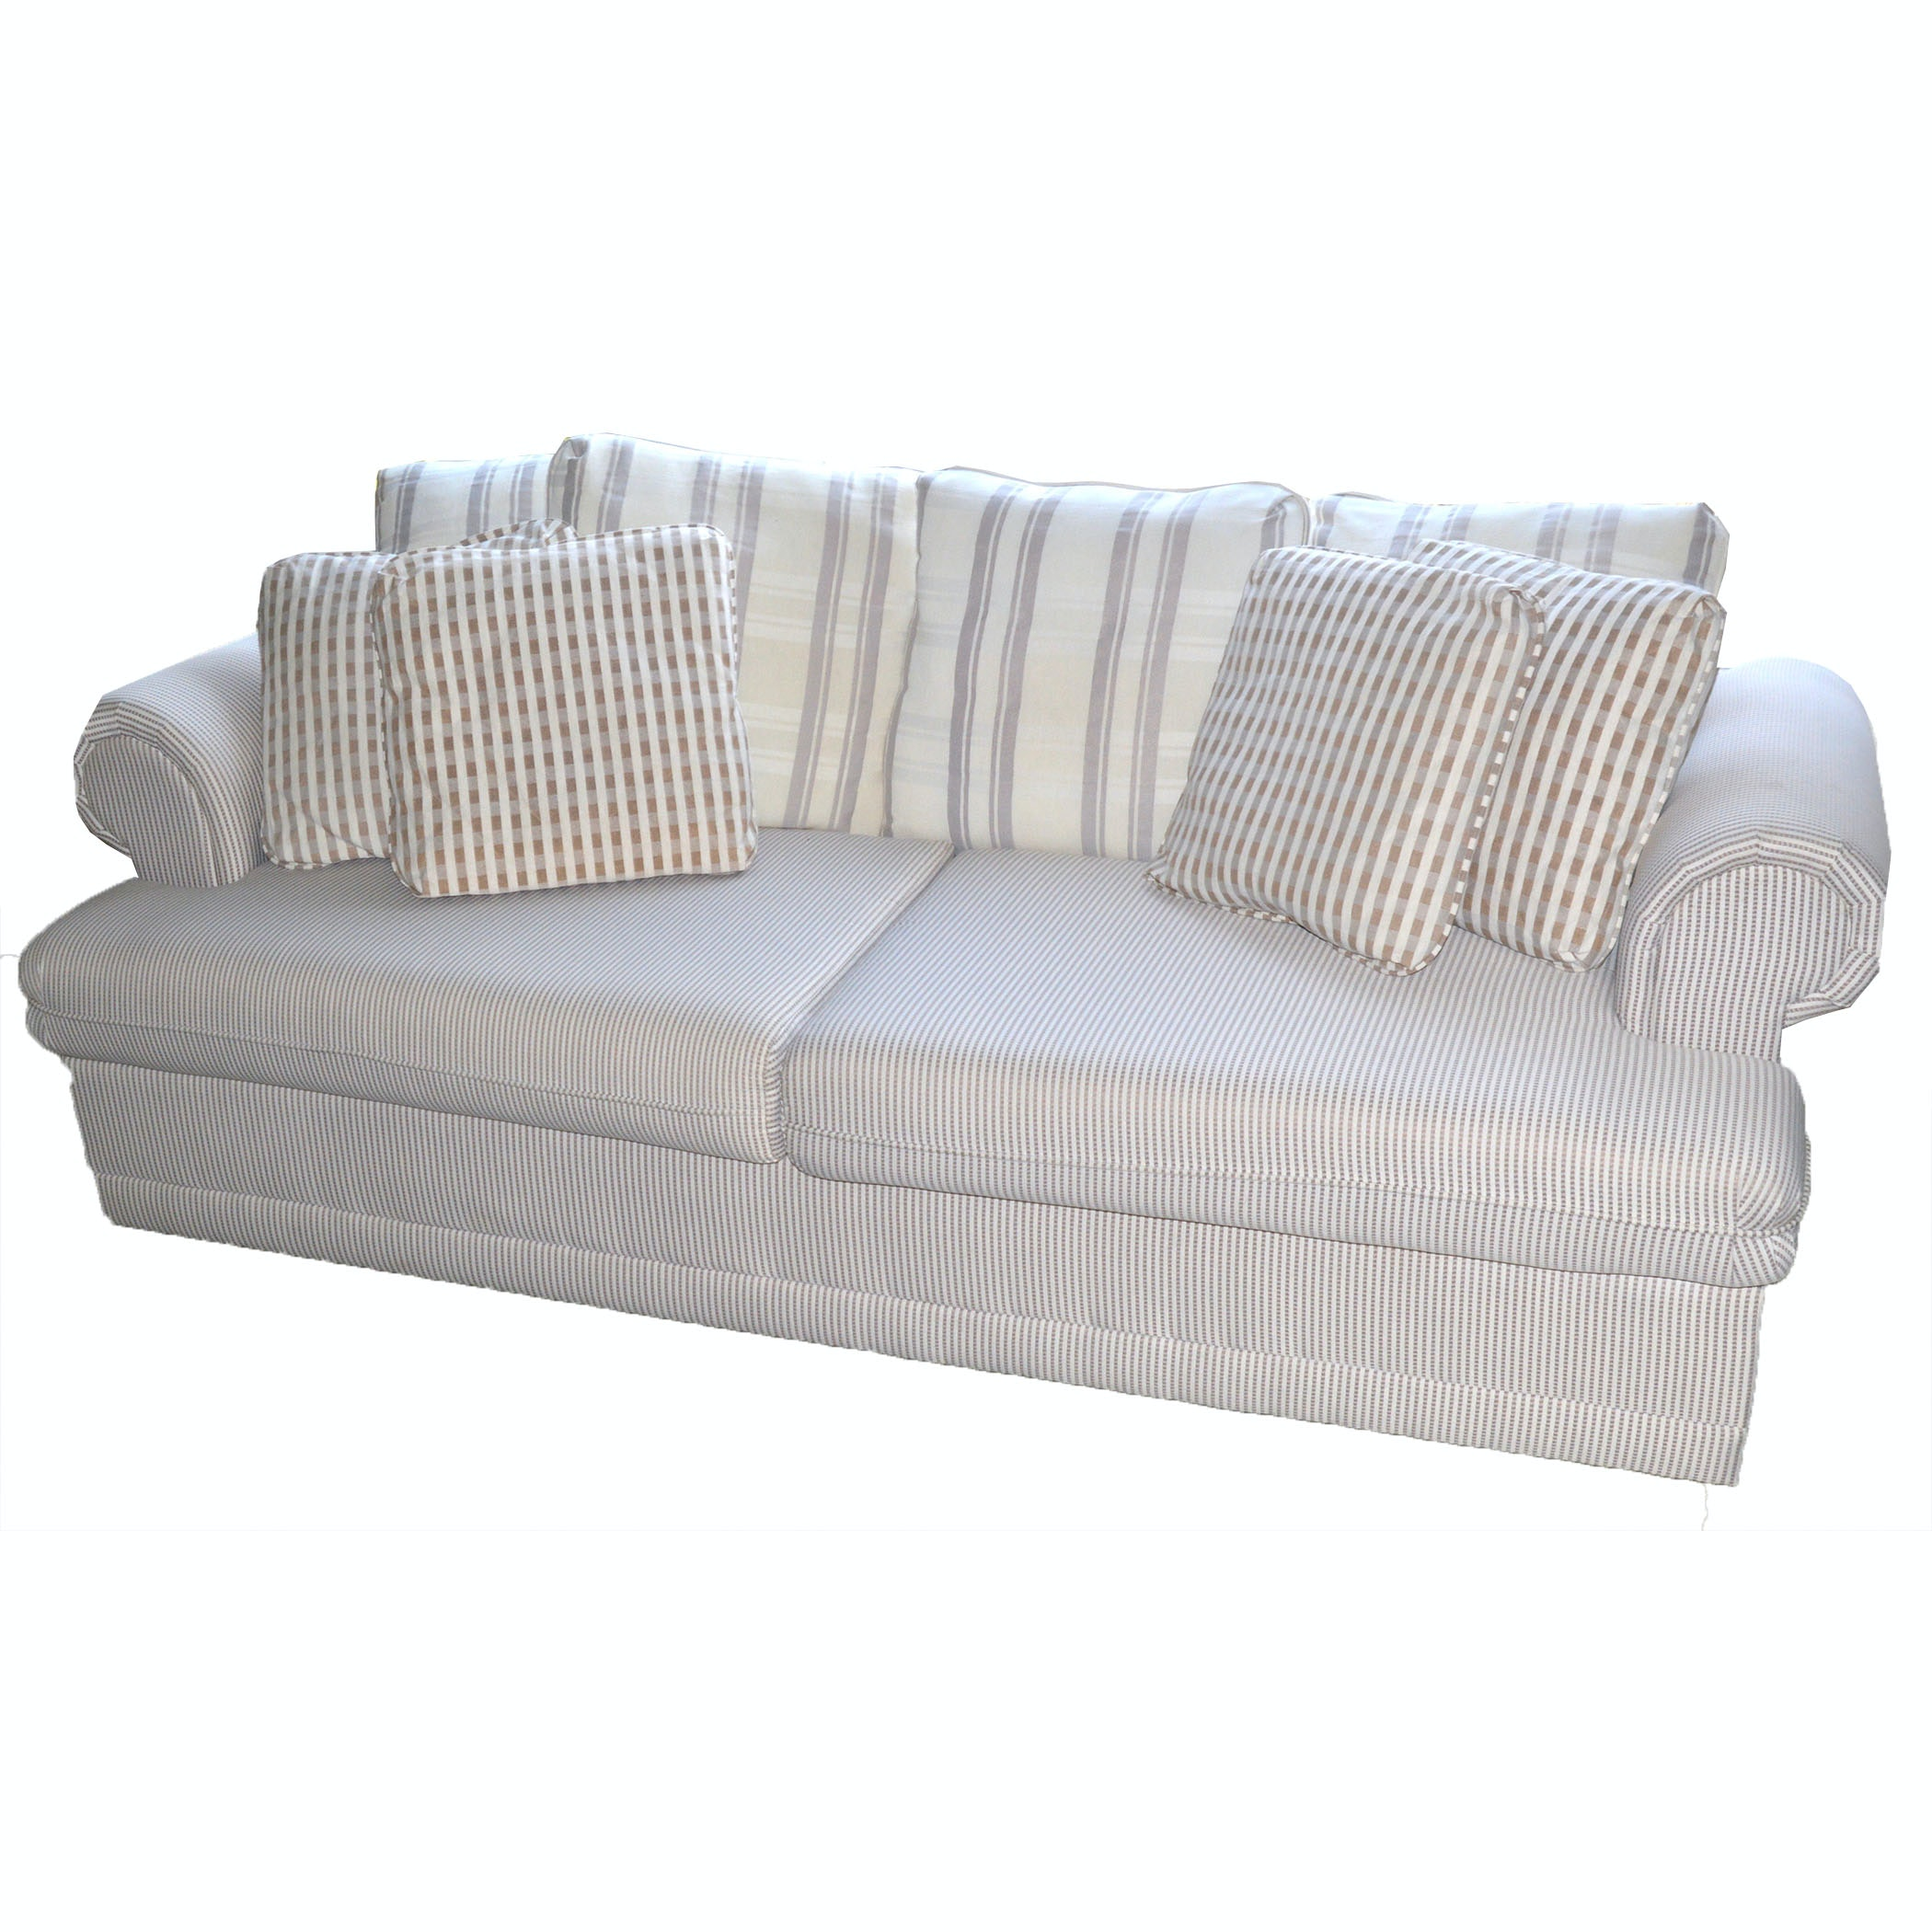 Superb Plush Fabric Sofa By Barclay Furniture Co.